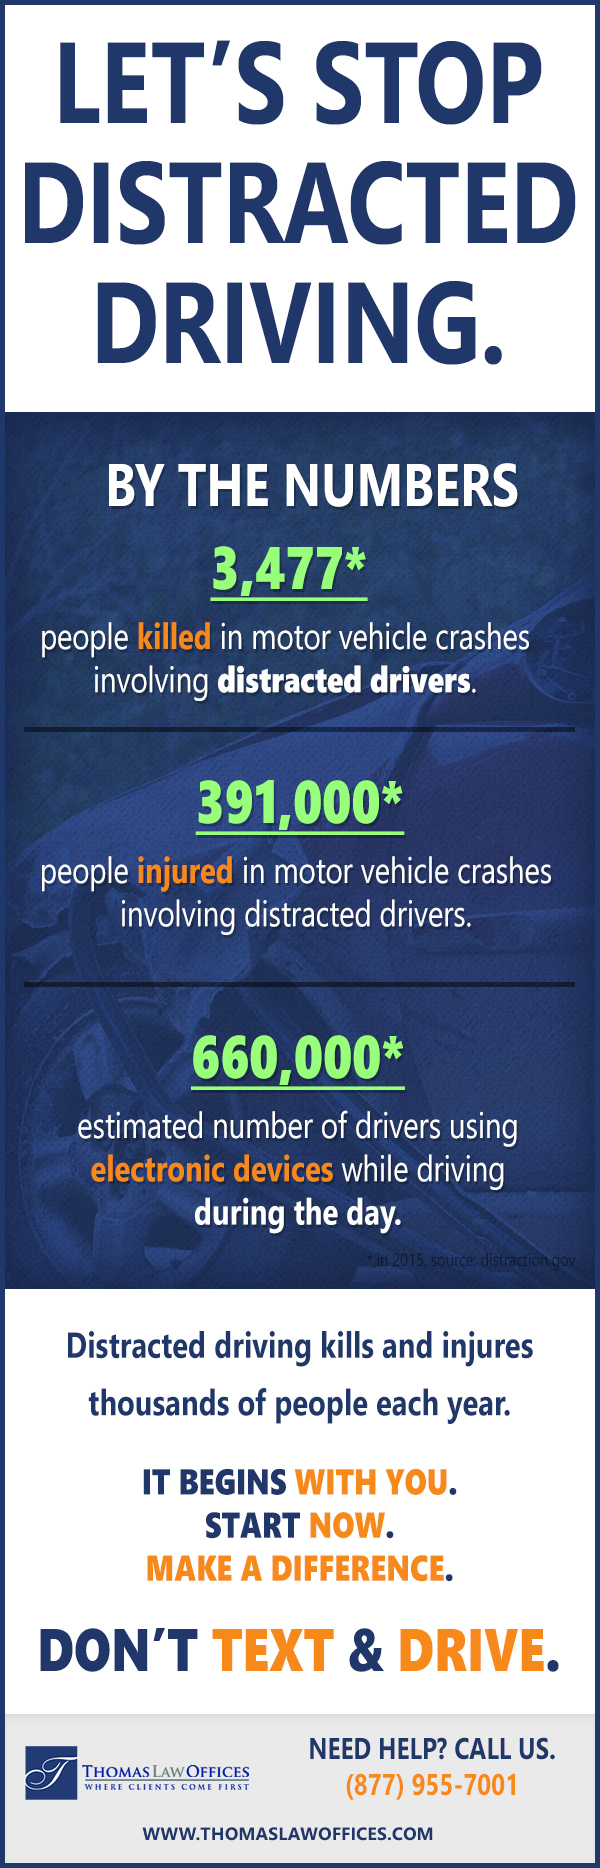 Ending-Distracted-Driving-Stops-With-Us-infographic-plaza